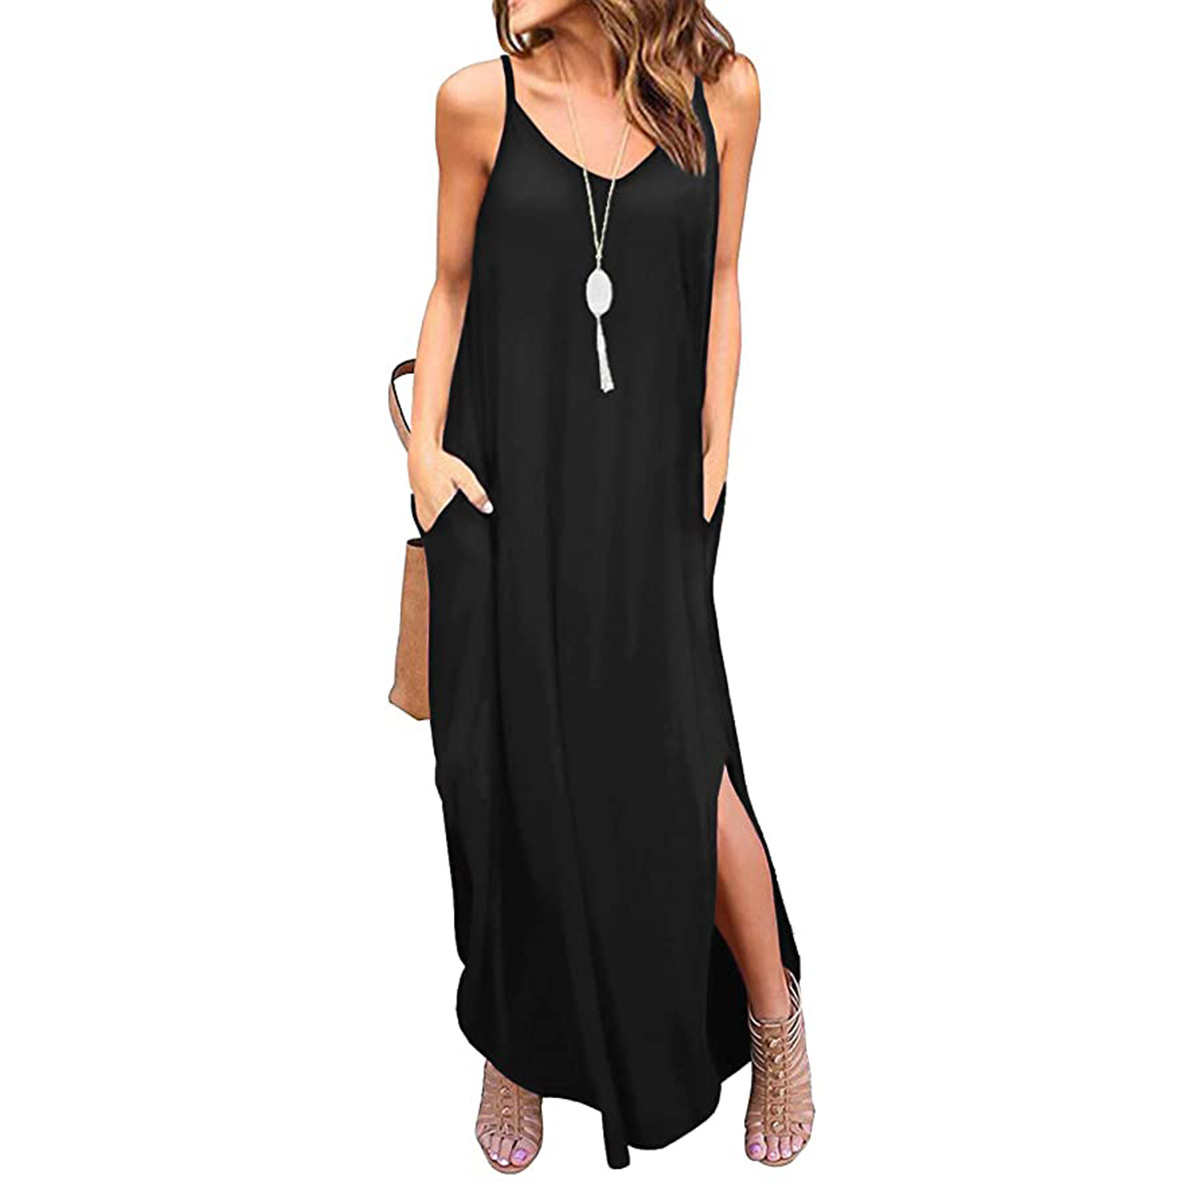 cami black maxi dress amazon sale